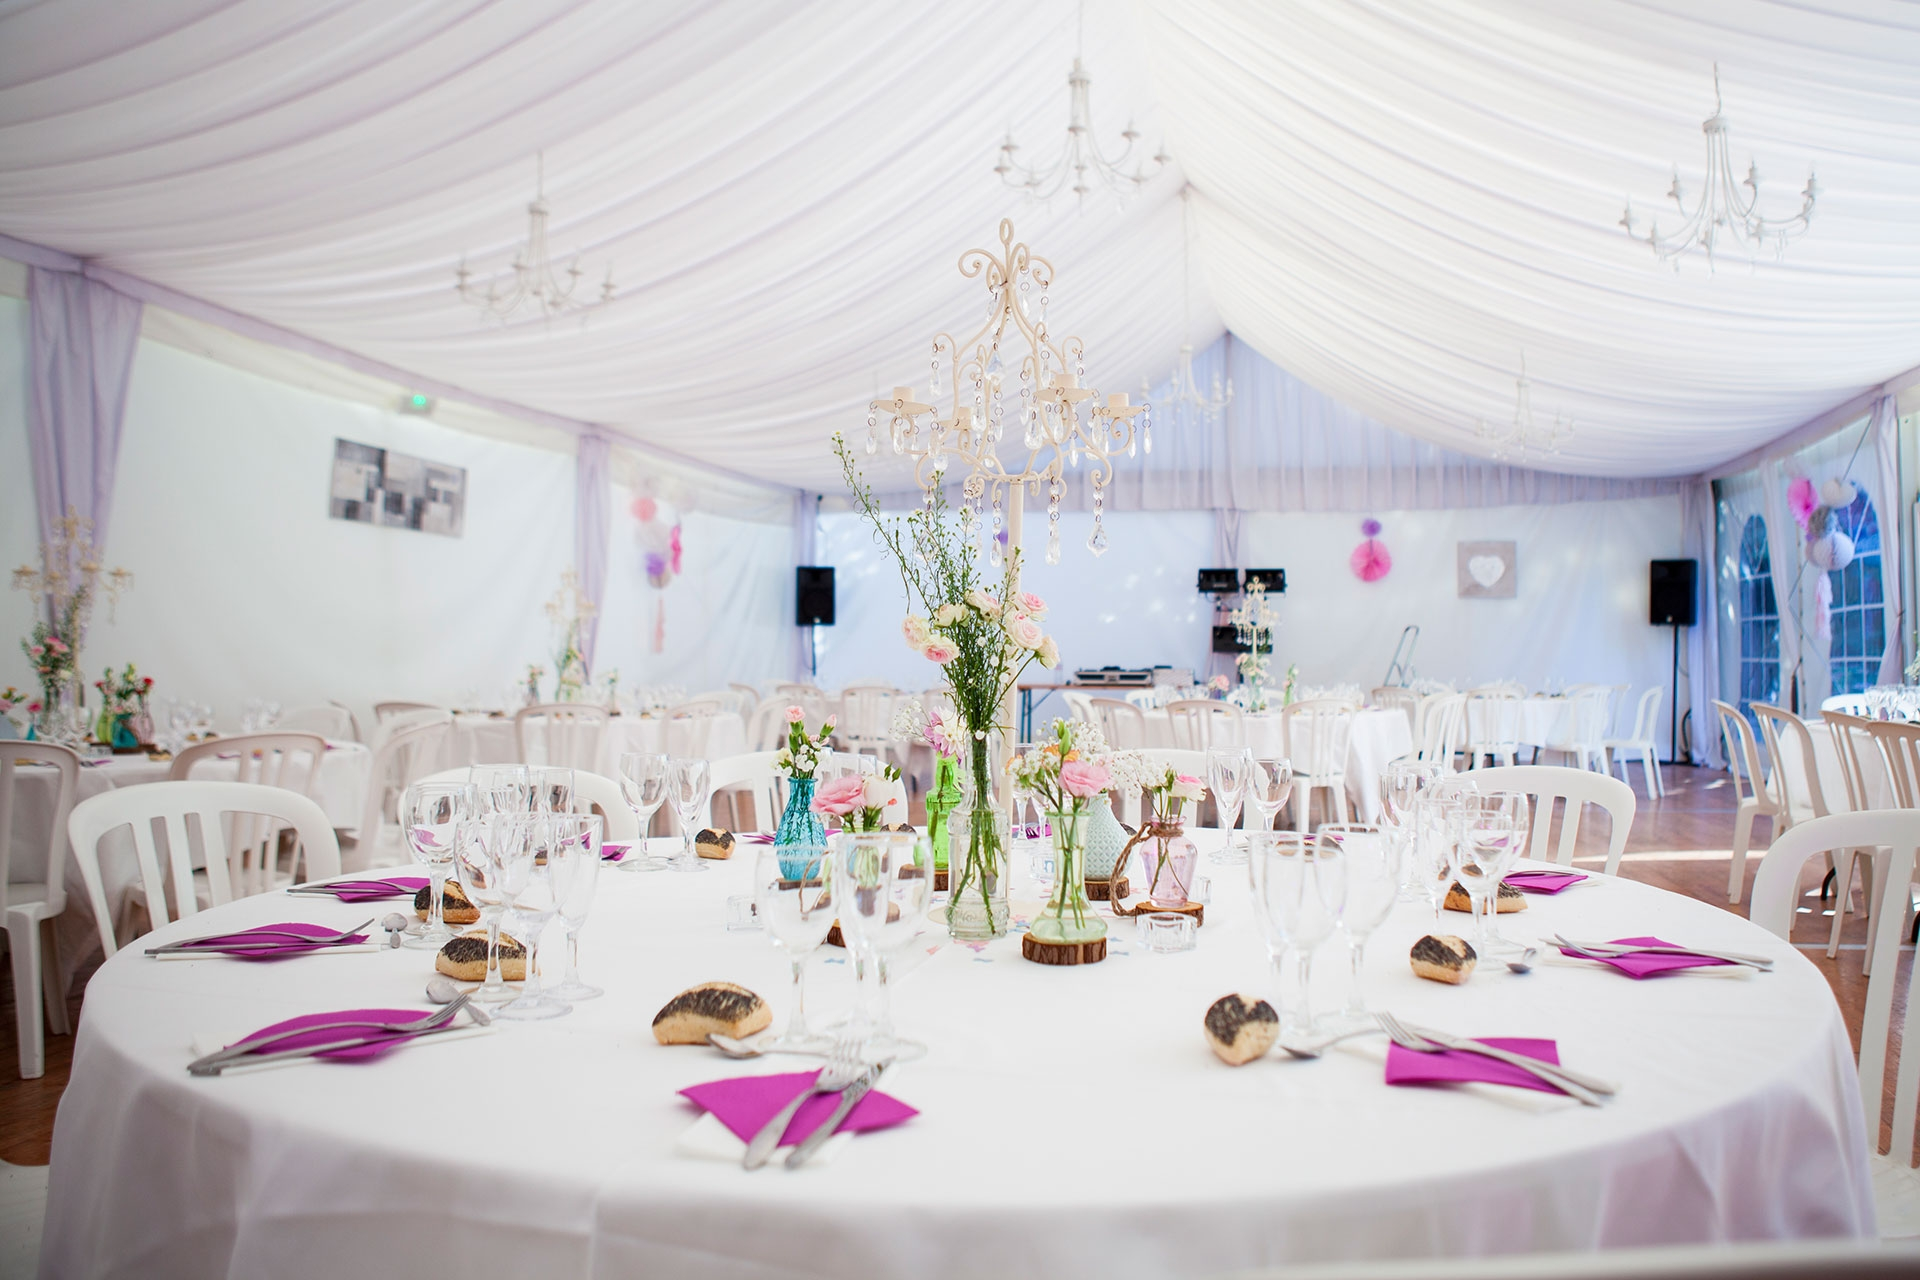 particuliers-evenements-mariages-oui-france&philippe-68